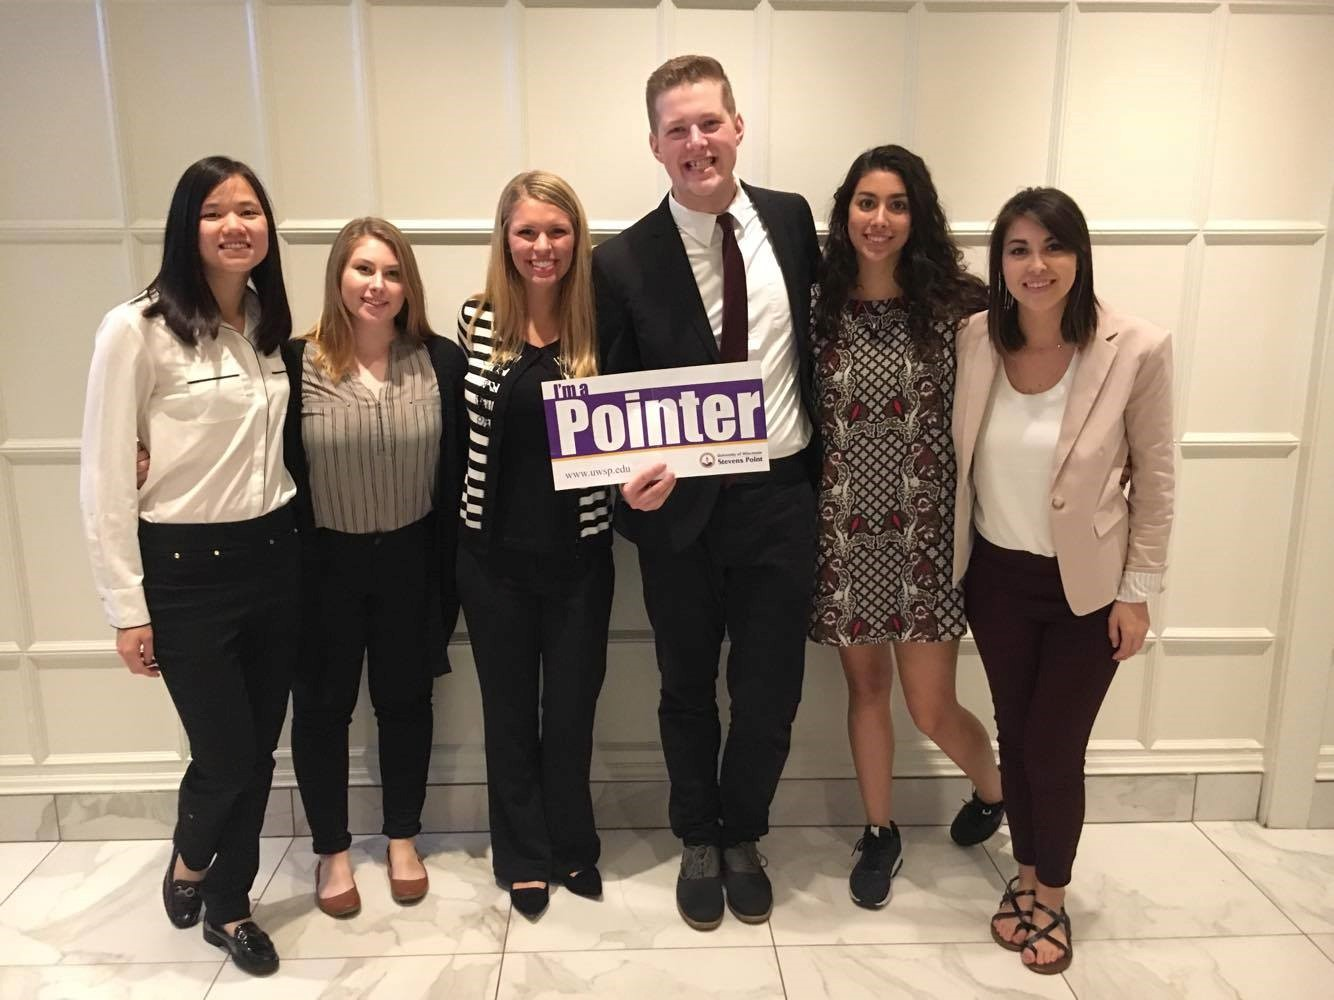 Anyon Rettinger shares his experiences joining campus organizations at UW-Stevens Point and traveling to student conferences across the nation.